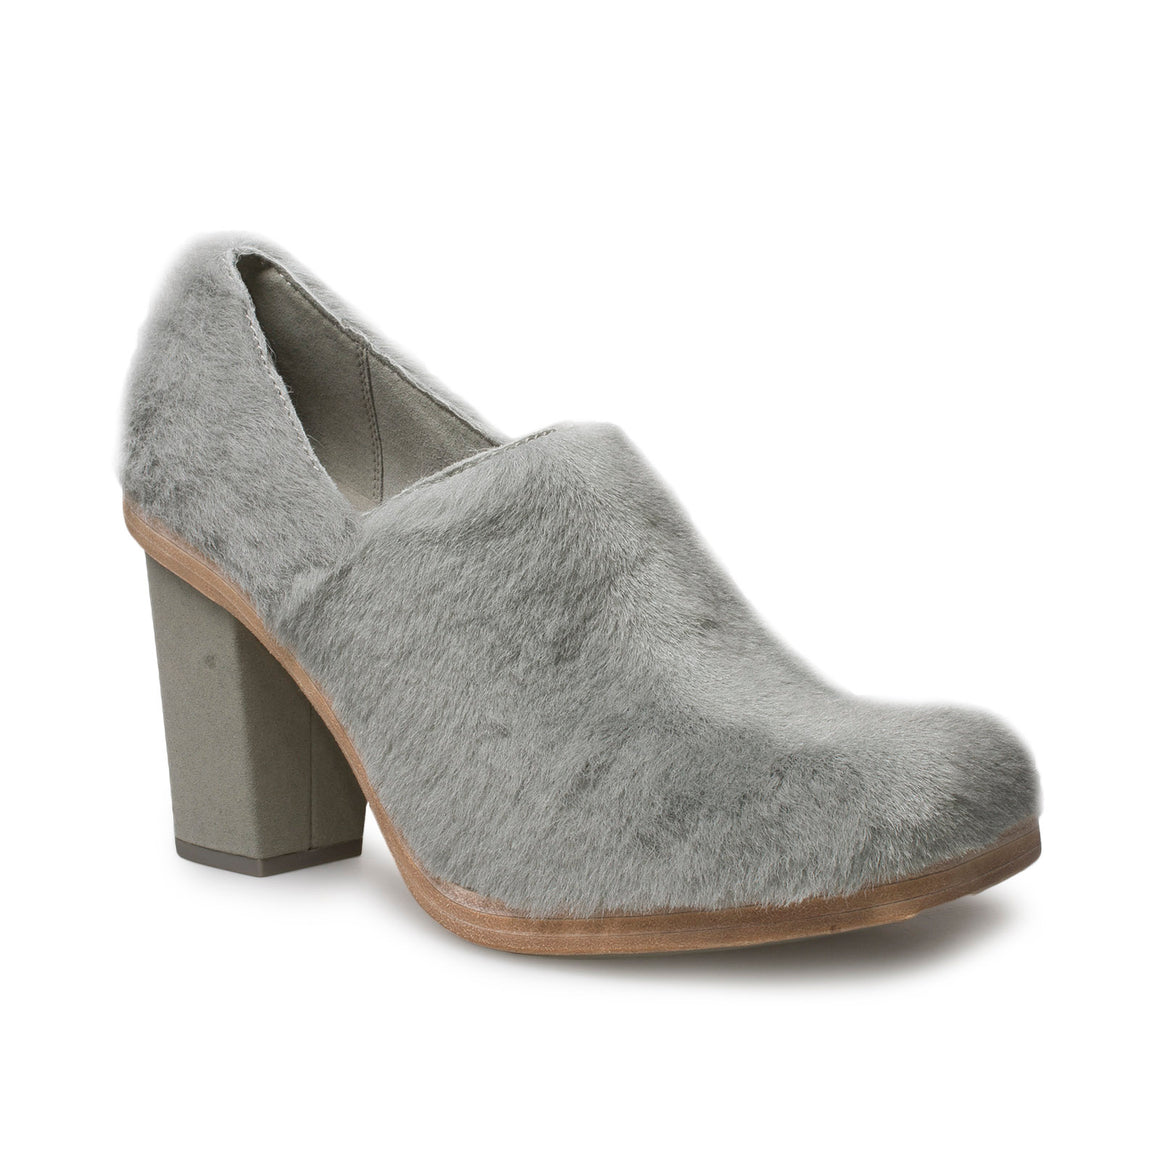 UGG Eckhaus Latta Court Not Clog Grey Shoes - Women's